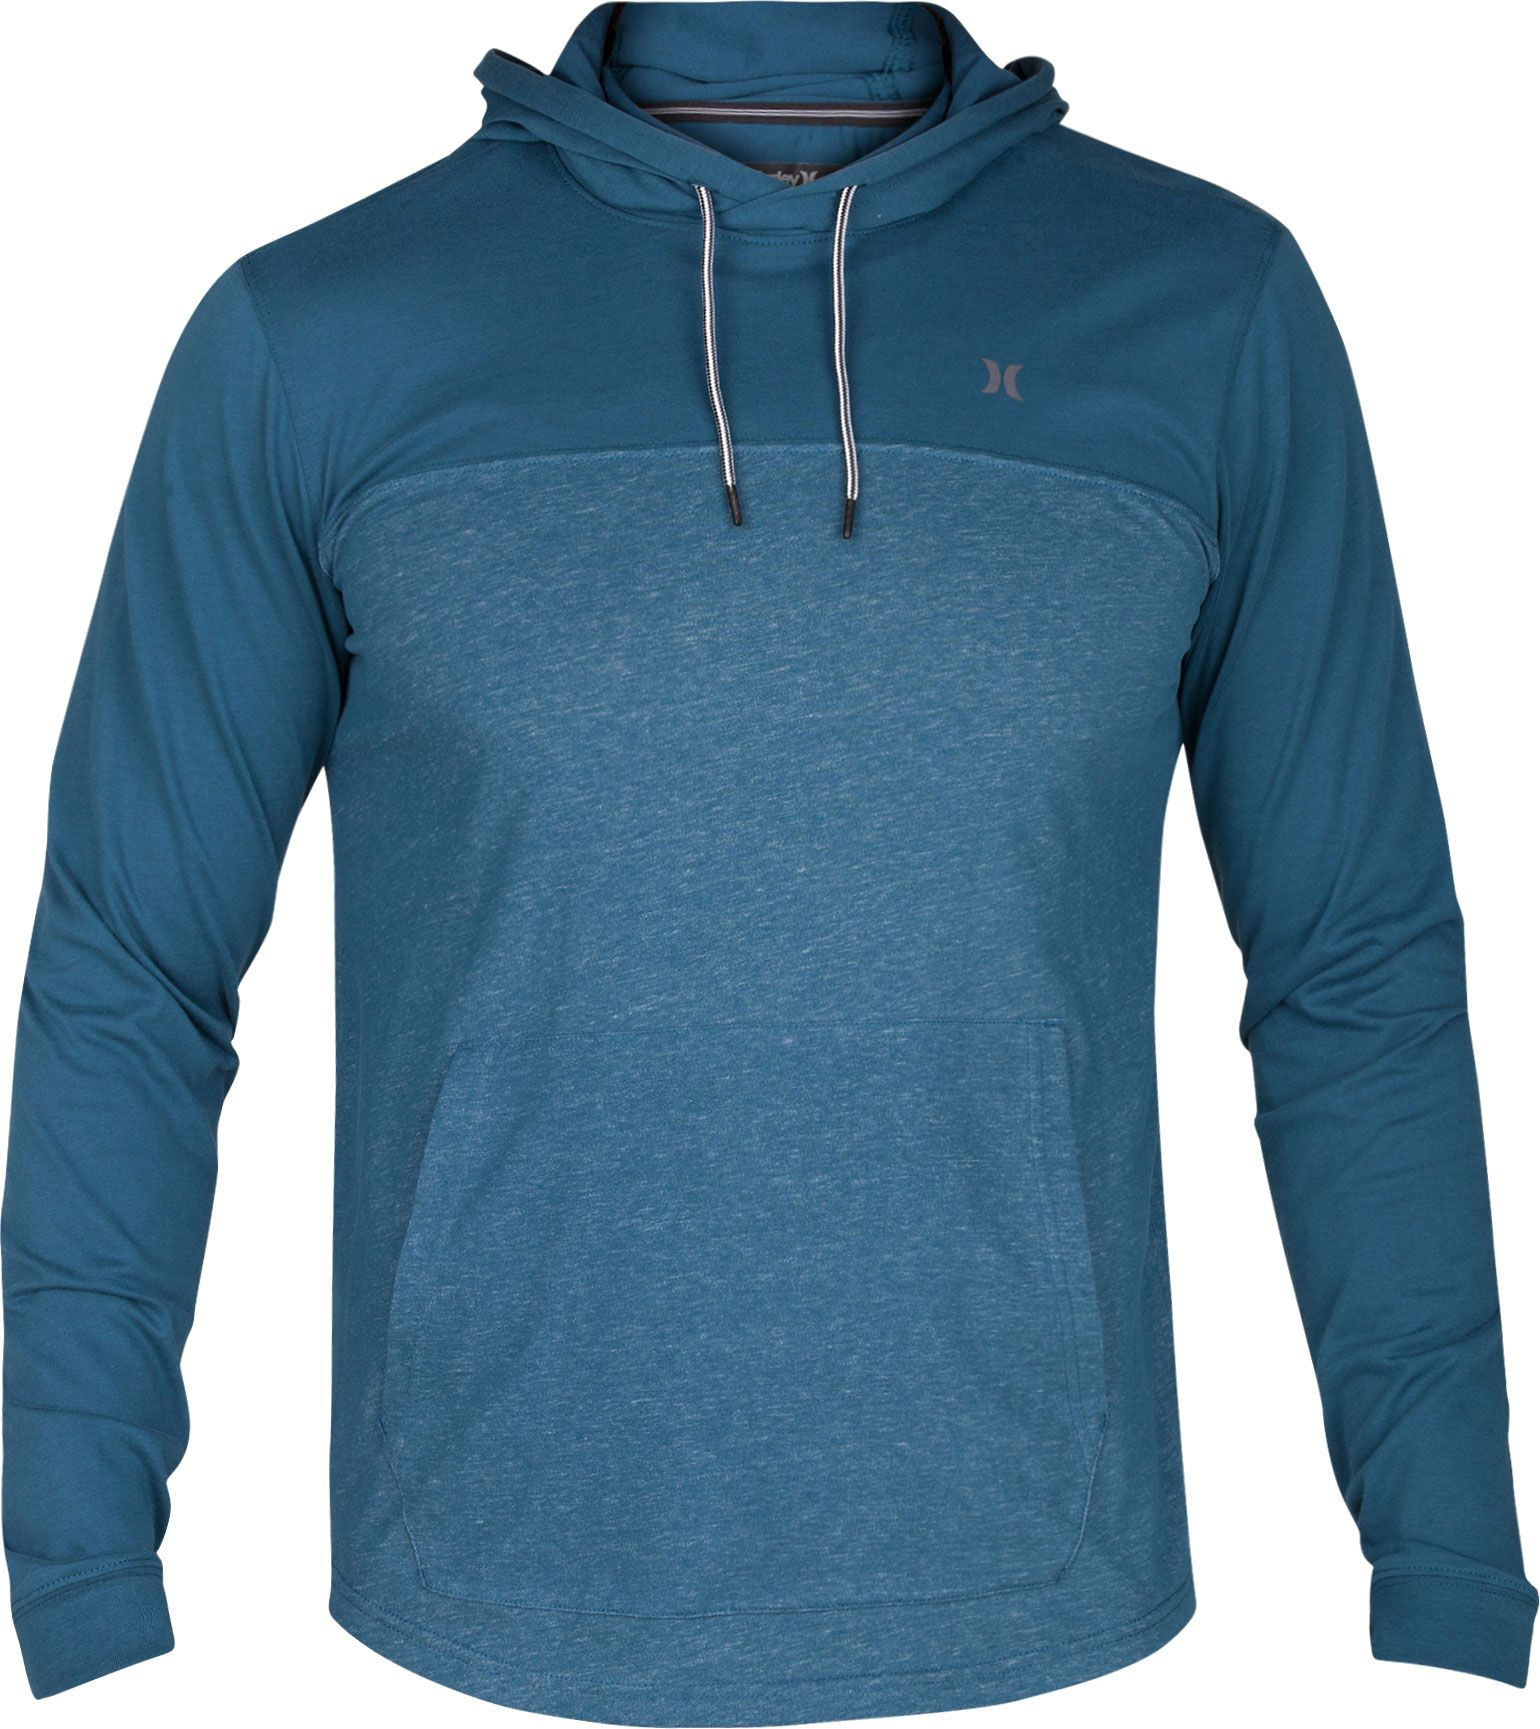 Men's Long Sleeve Hooded Shirts | DICK'S Sporting Goods